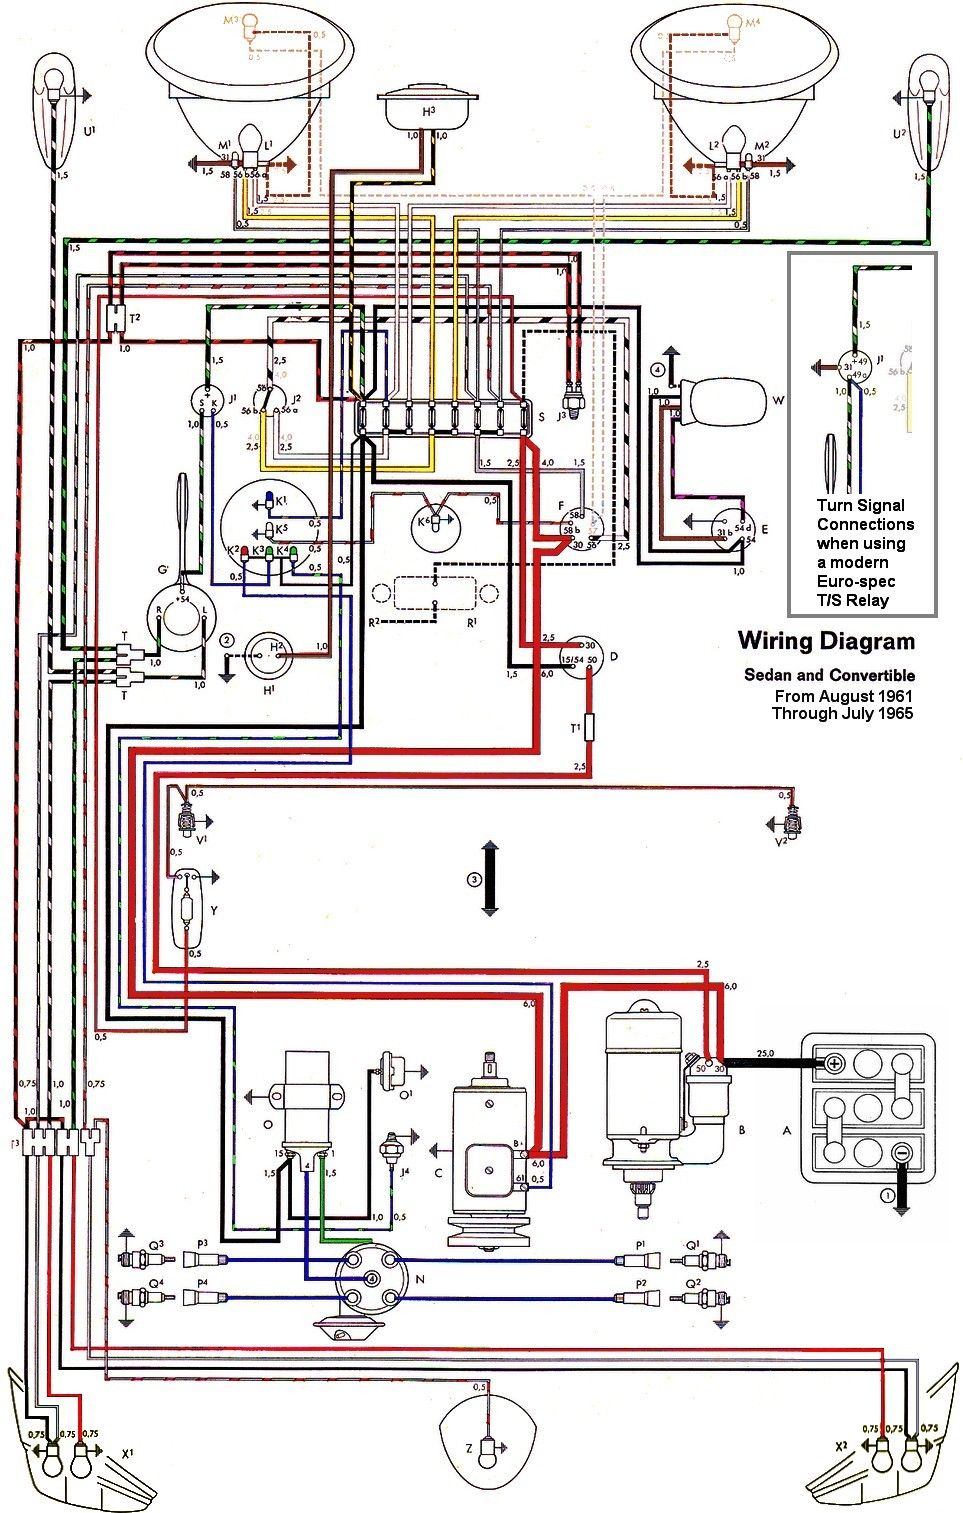 medium resolution of wiring diagram vw beetle sedan and convertible 1961 1965 vw 1965 lincoln wiring diagram 1965 vw